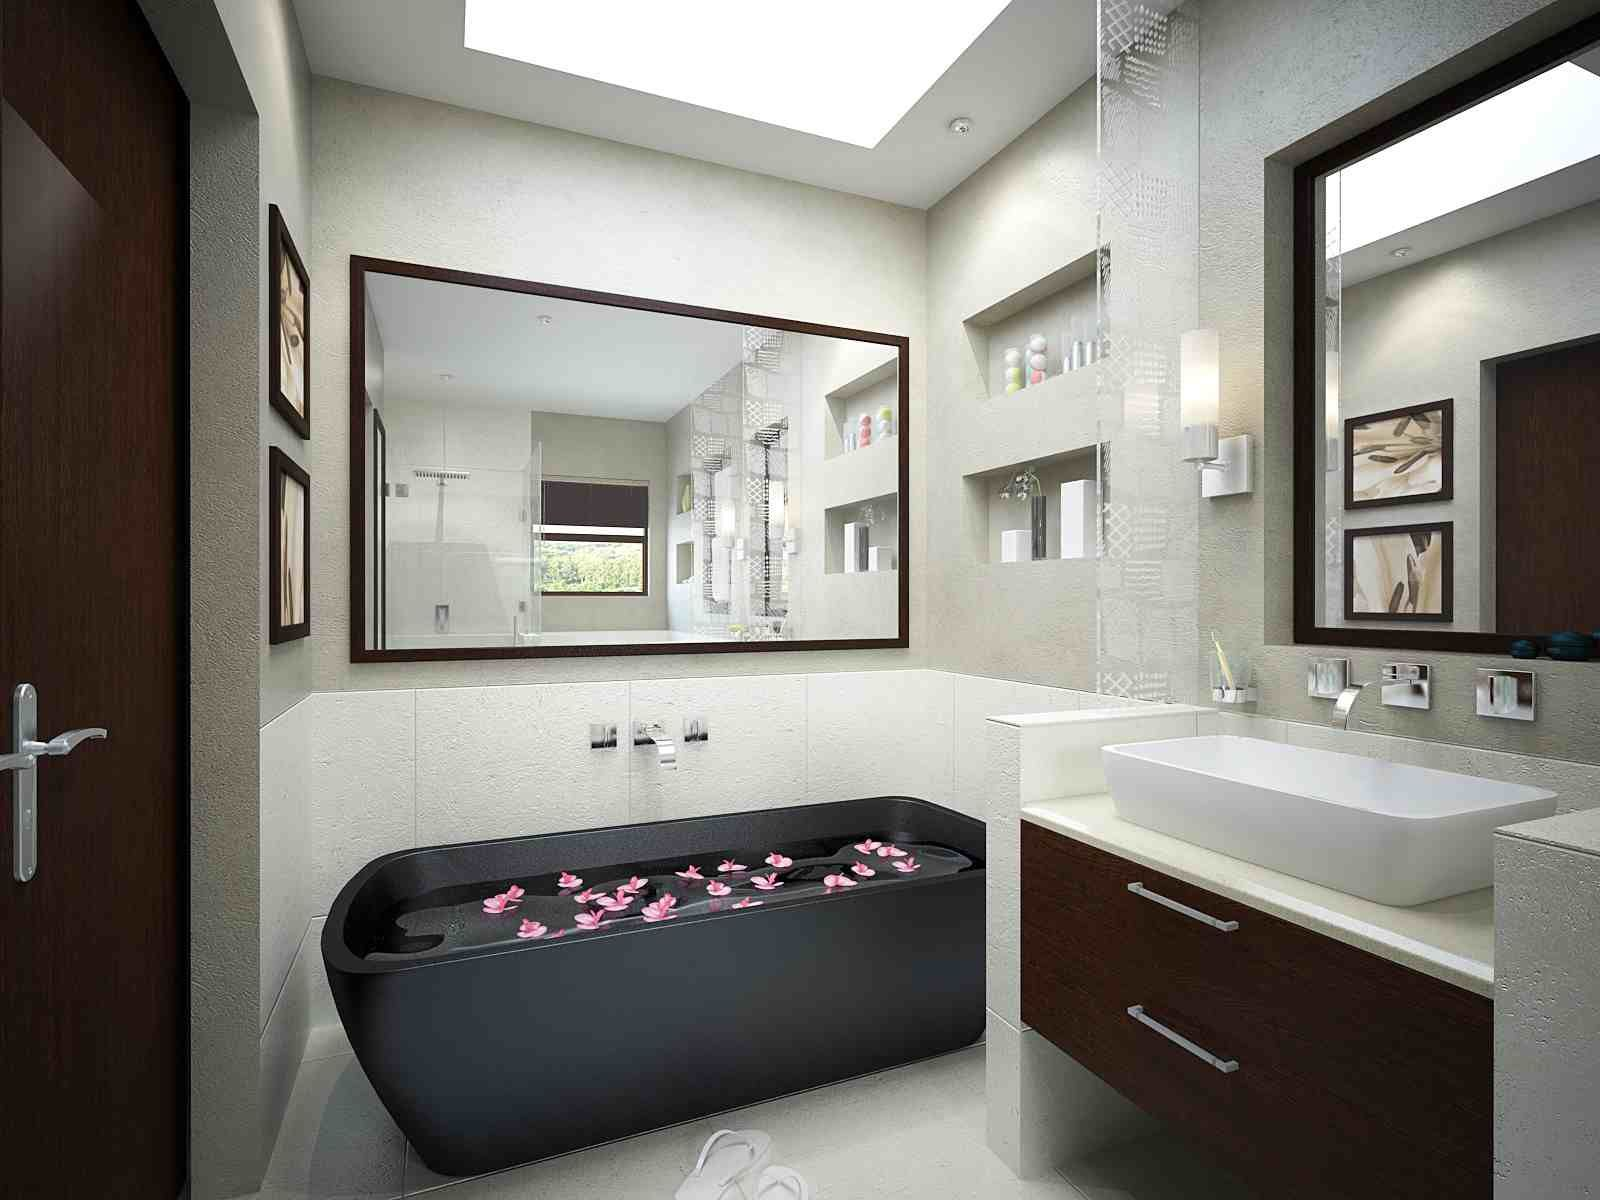 100 Small Skylights Bathrooms Neutral Interior Paint Colors Check more at